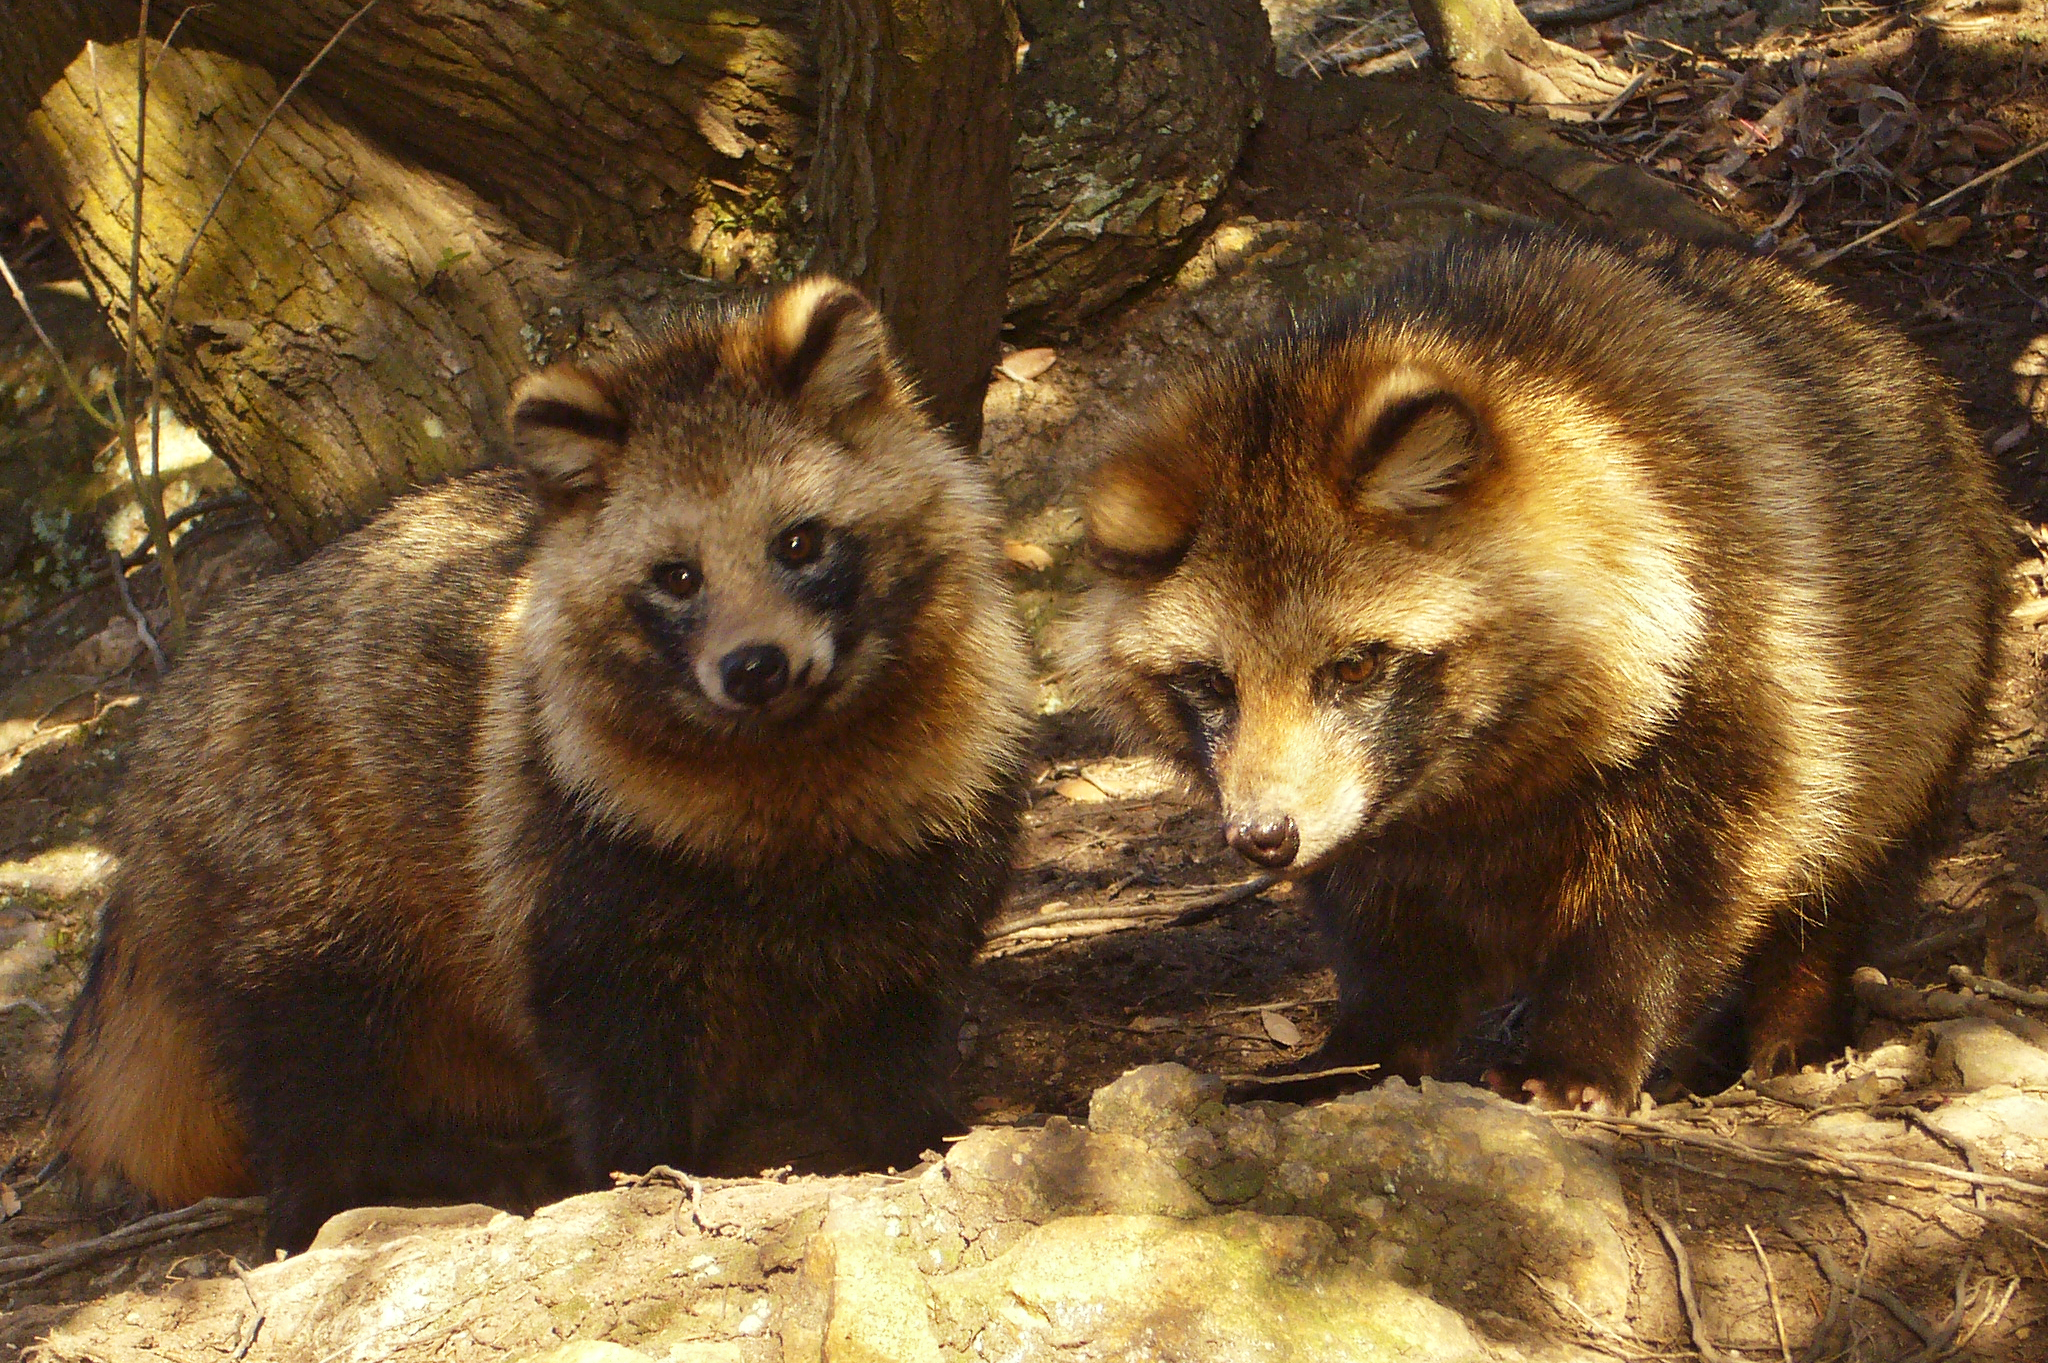 http://upload.wikimedia.org/wikipedia/commons/5/51/Tanuki01_960.jpg